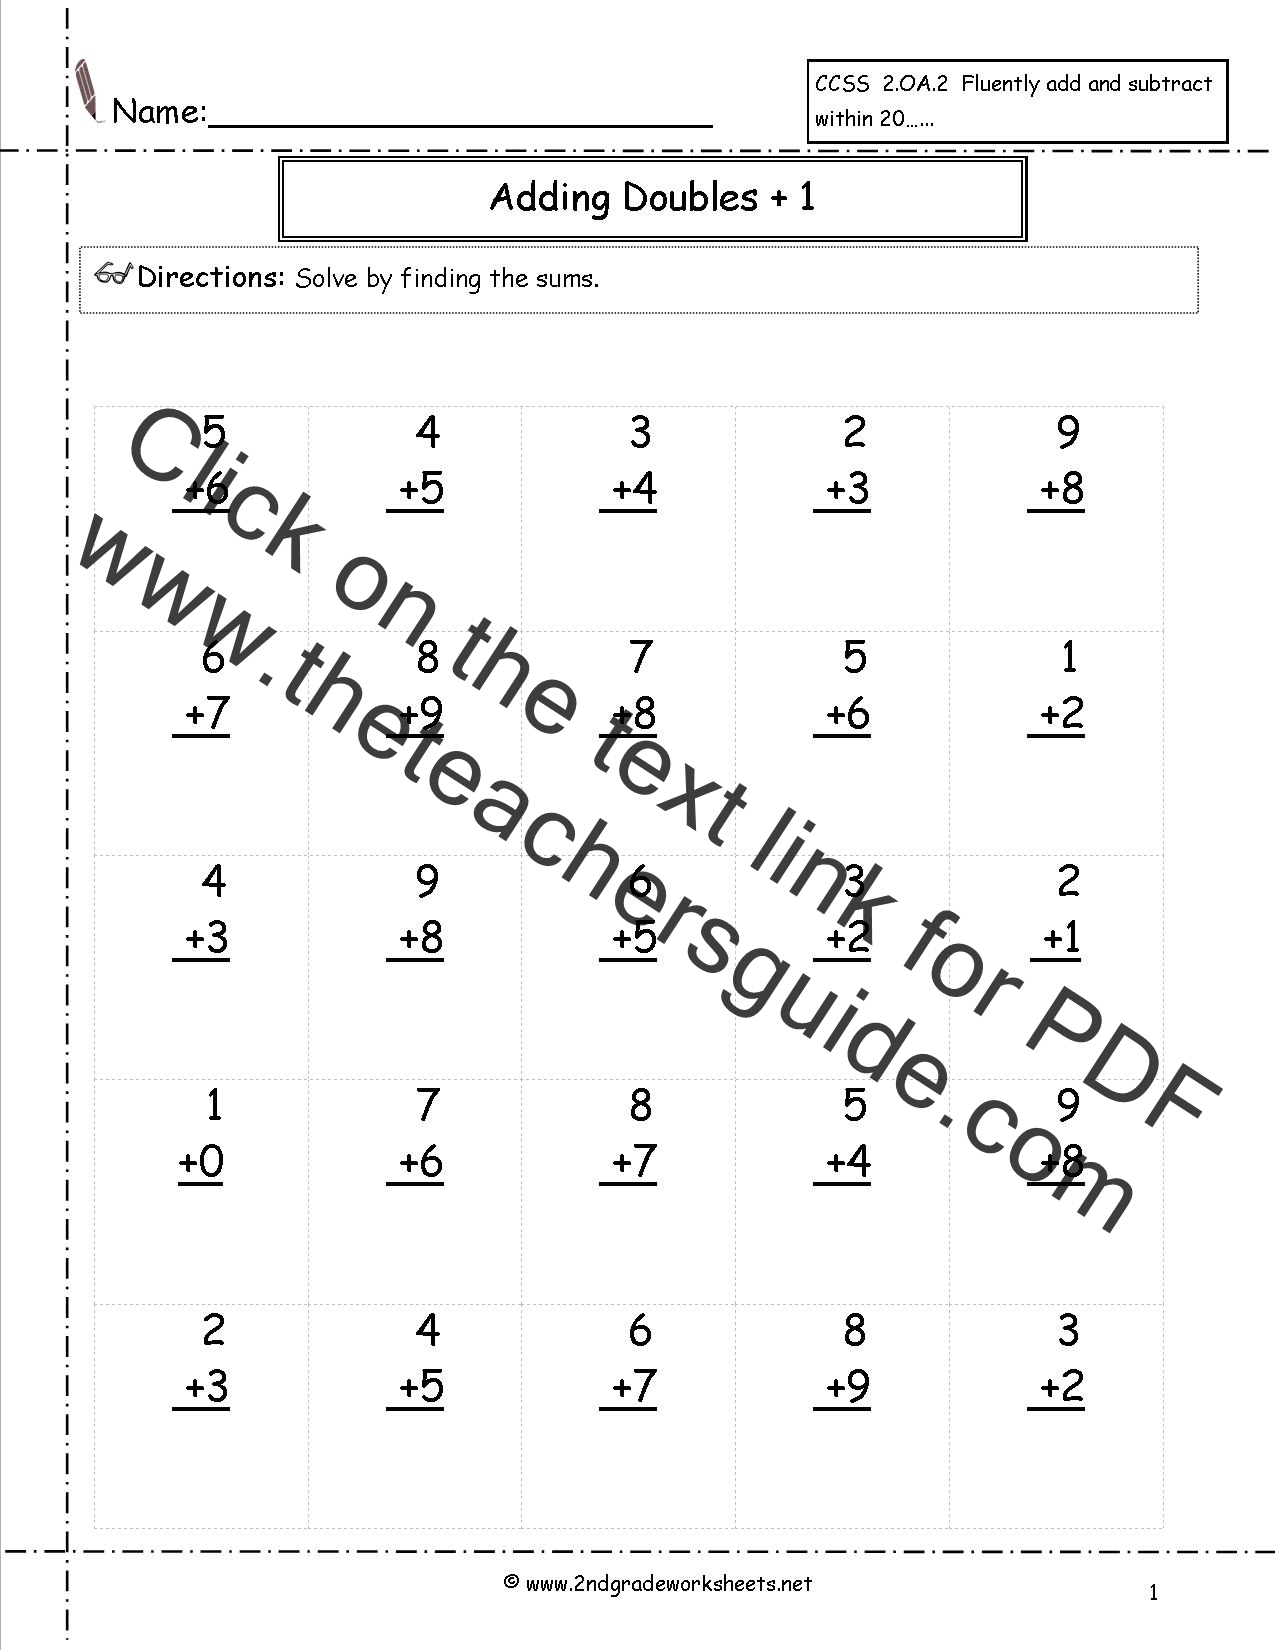 Worksheets answer key additionally 2 digit addition with regrouping